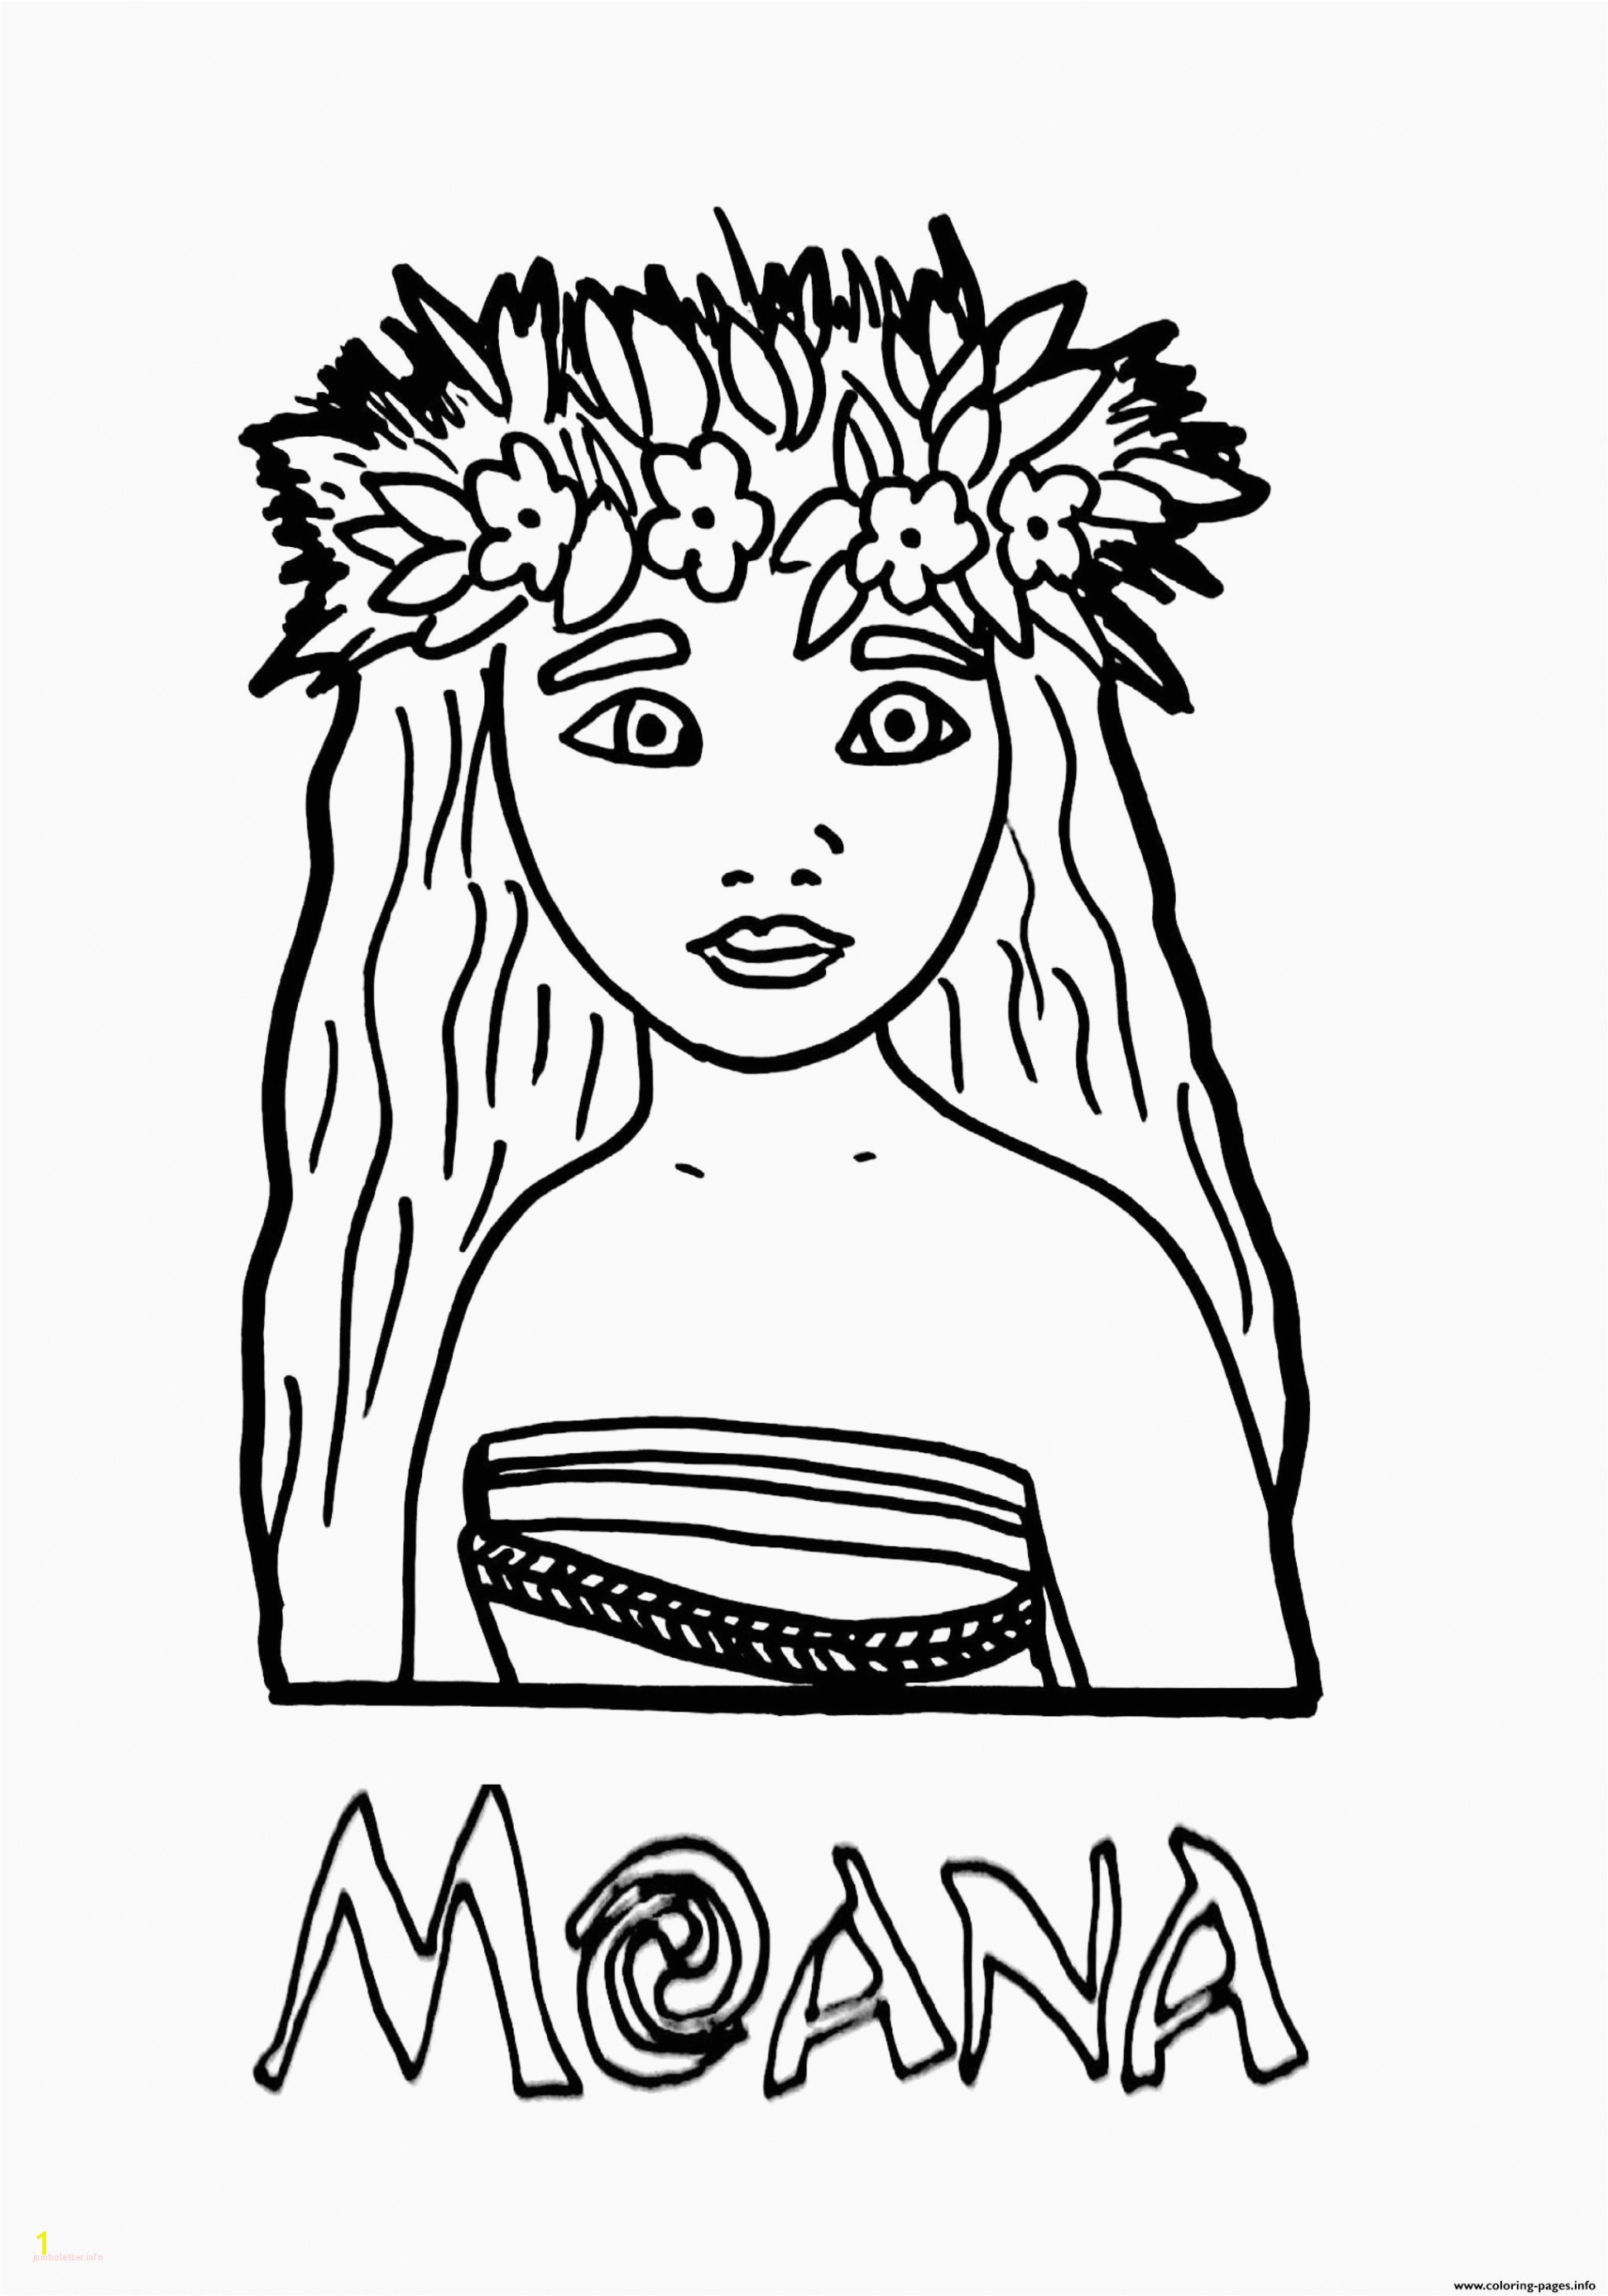 Disney Princess Coloring Pages Free Disney Princess Printable Printable Disney Princess 2018